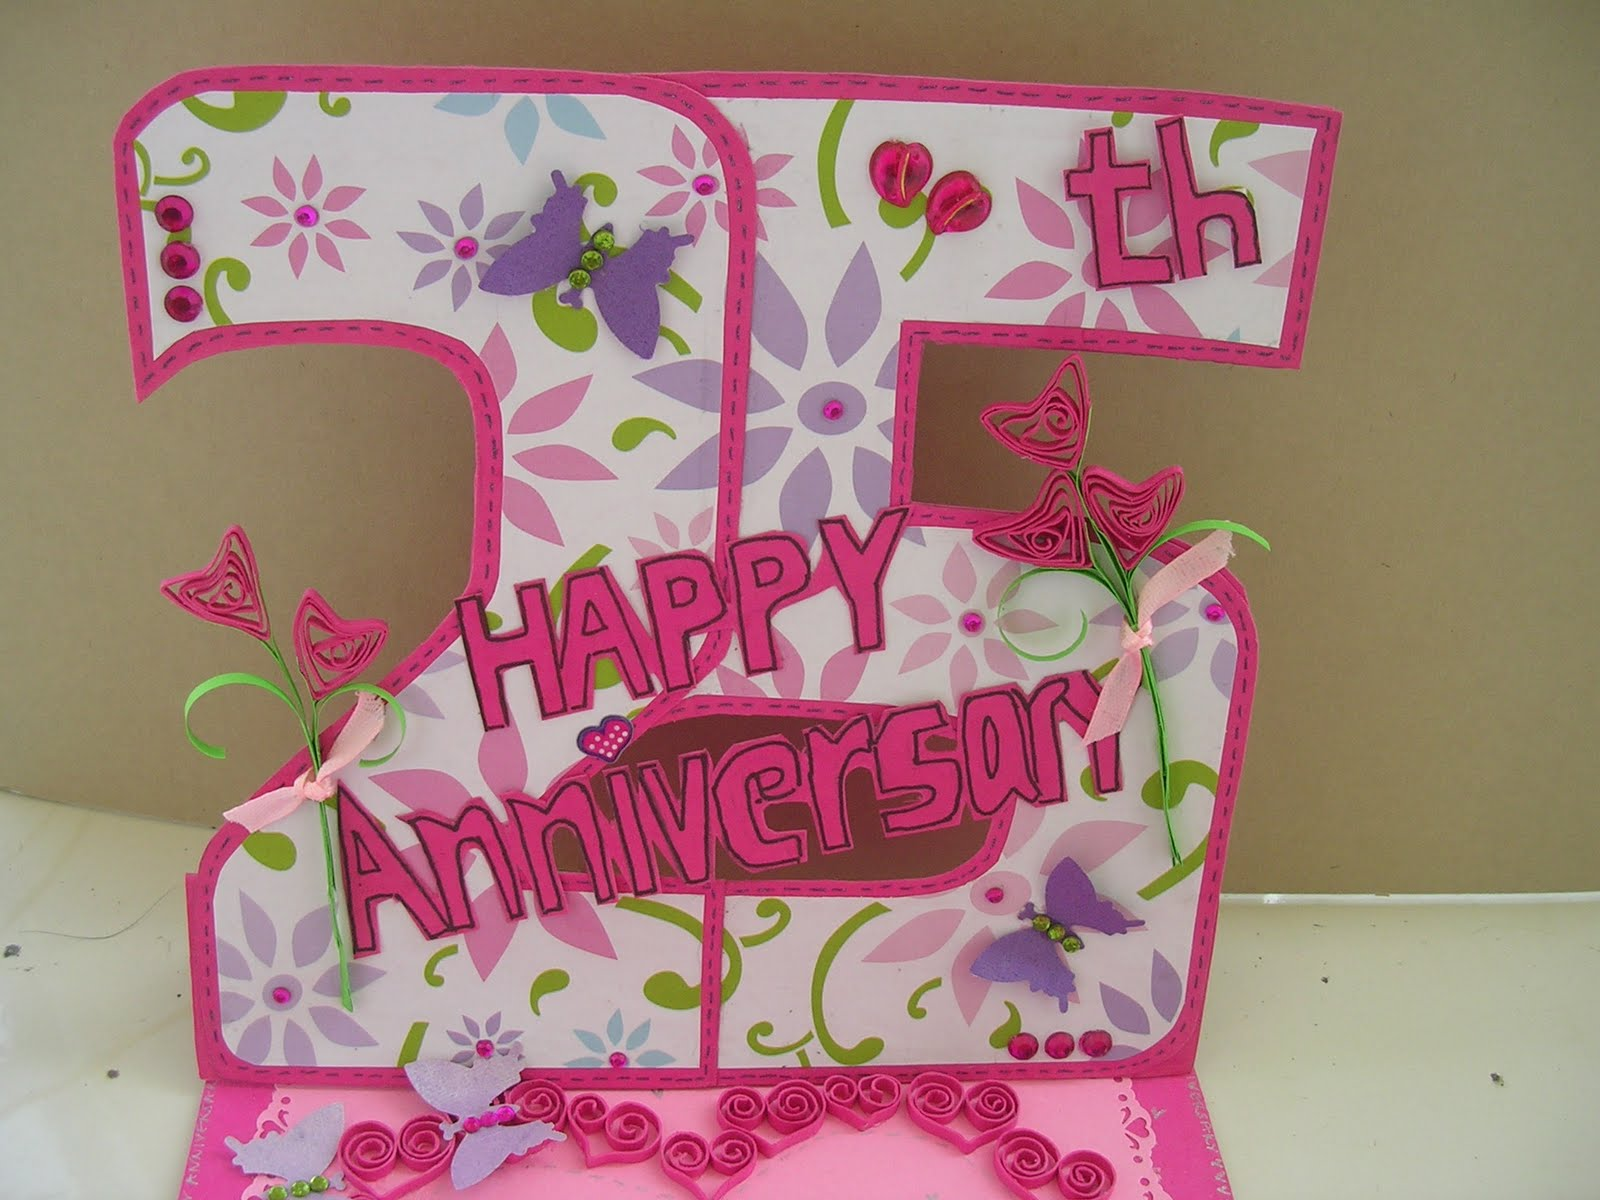 Vishesh collections handmade by deepti 25th anniversary card 25th anniversary card m4hsunfo